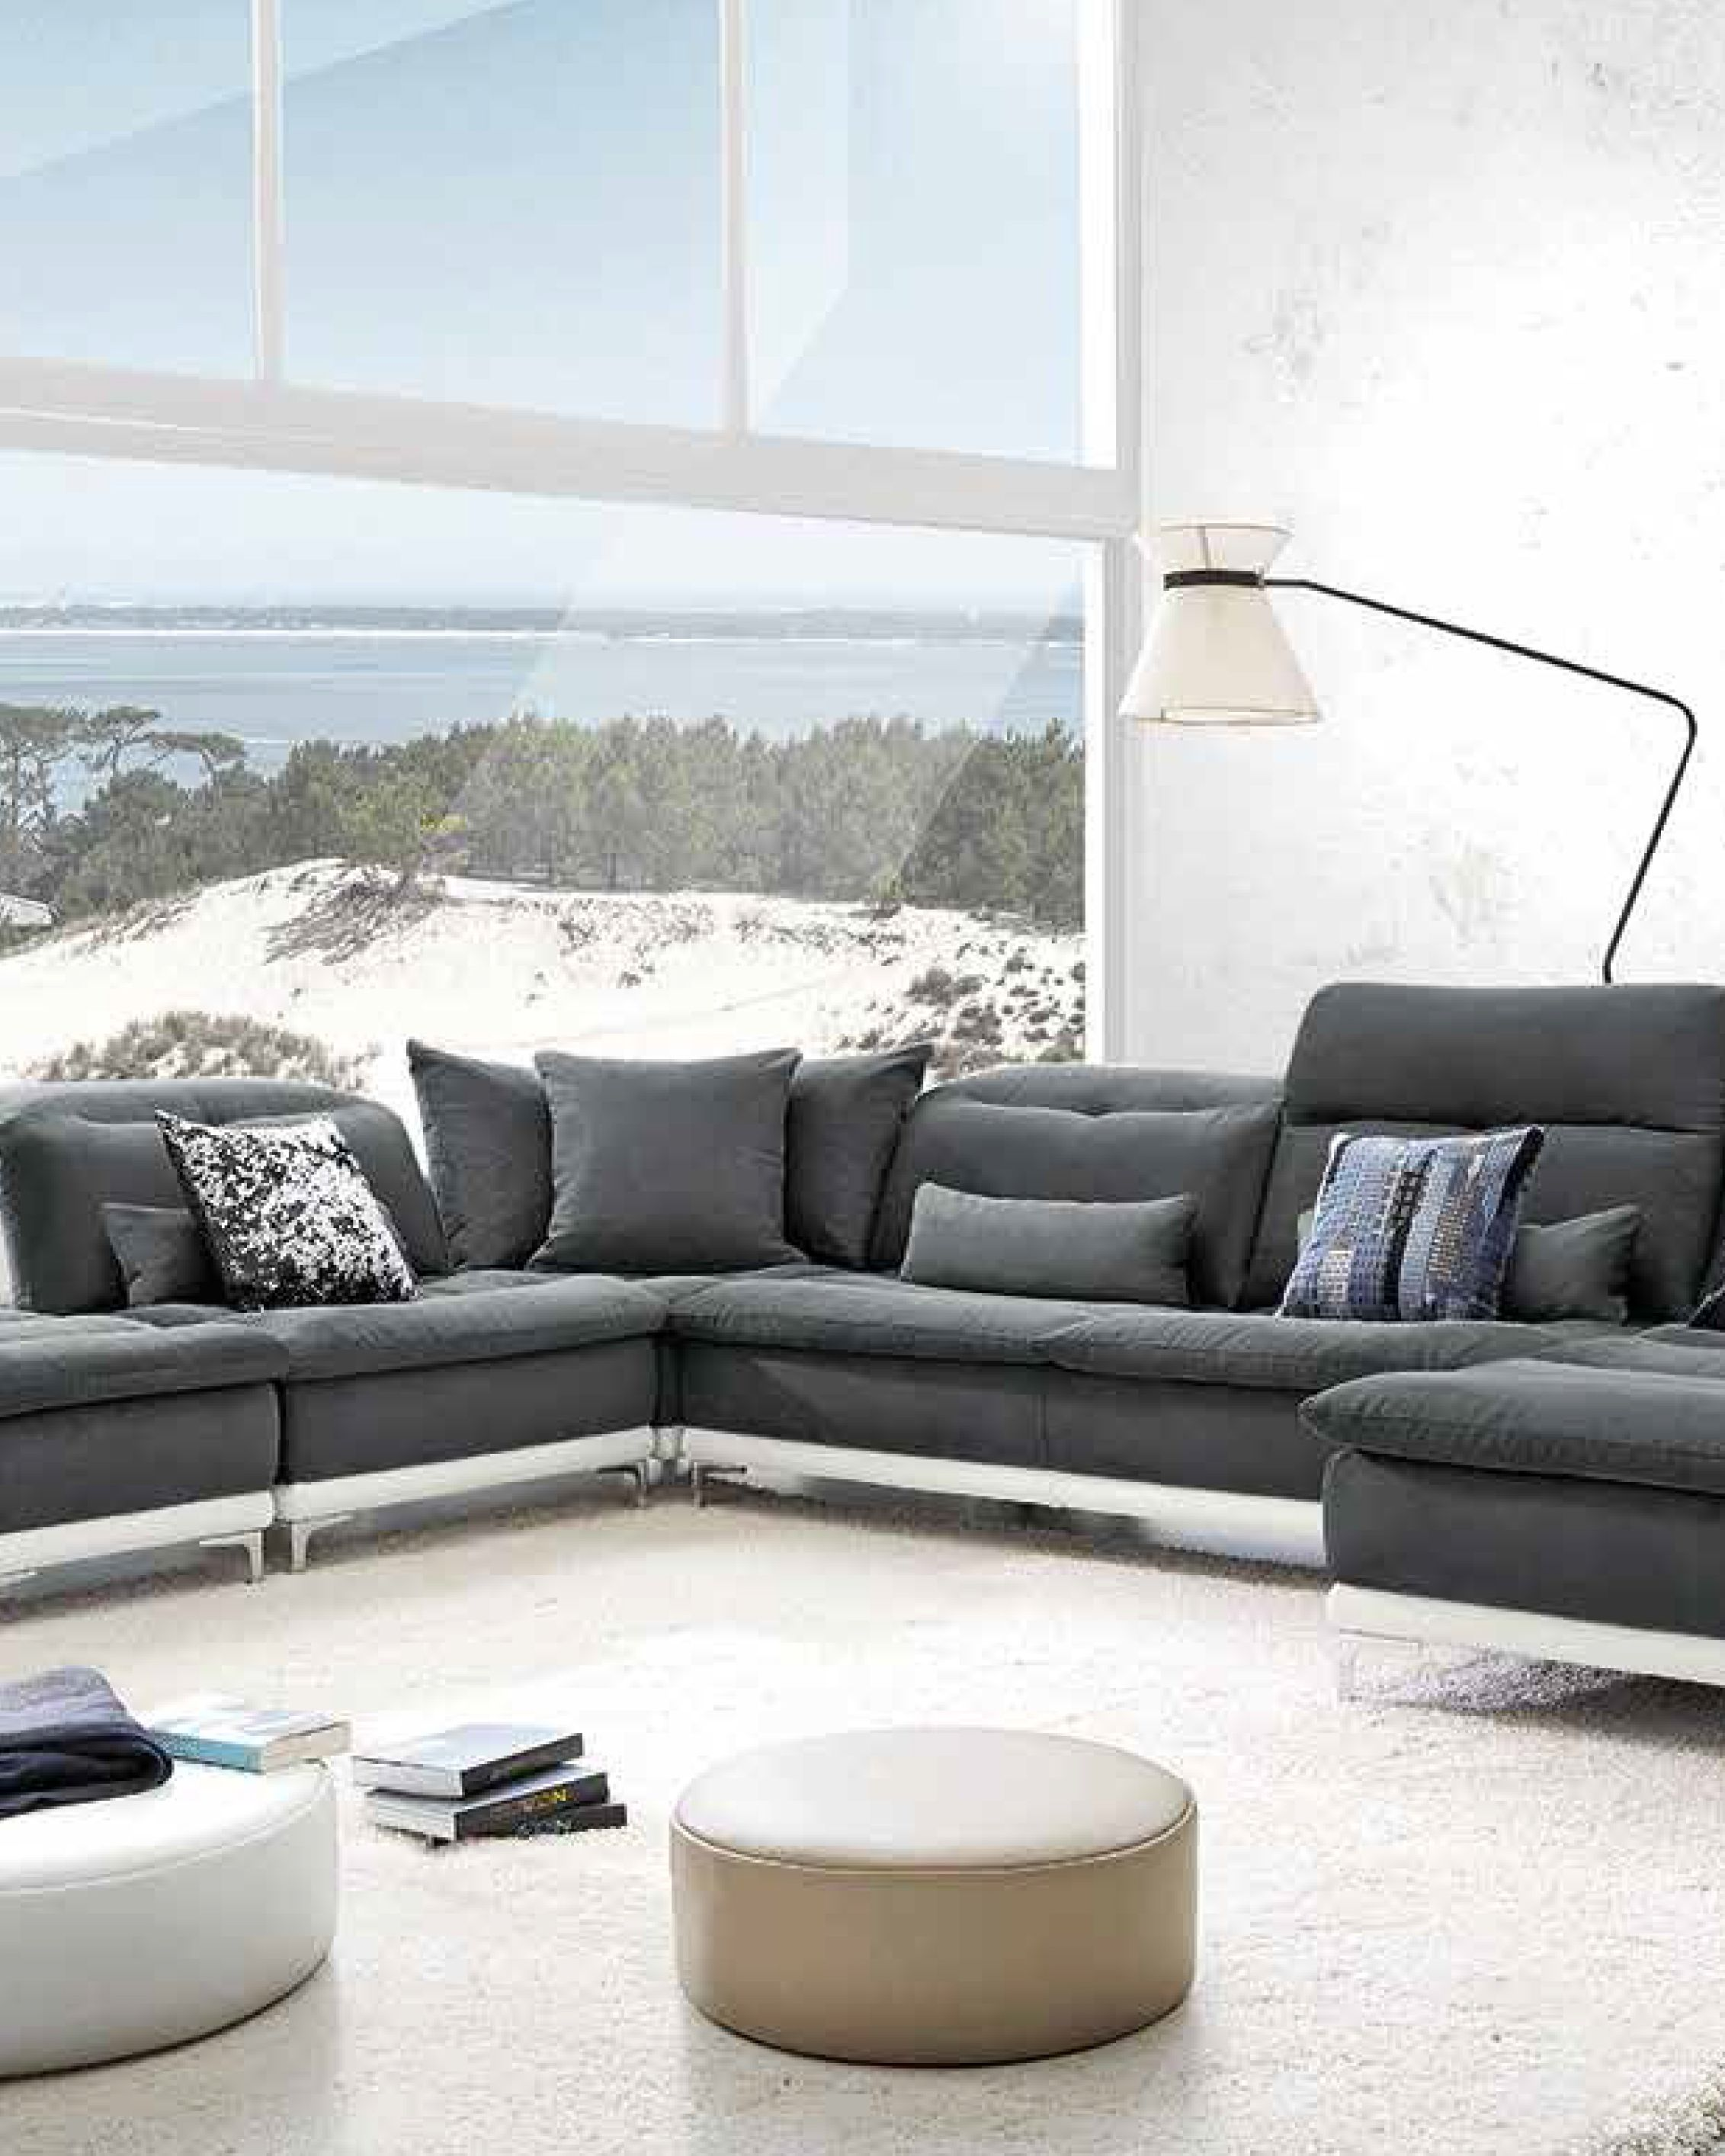 Lusso Horizon Modern Grey Fabric Leather Sectional Sofa Mission Style Table Plans David Ferrari And